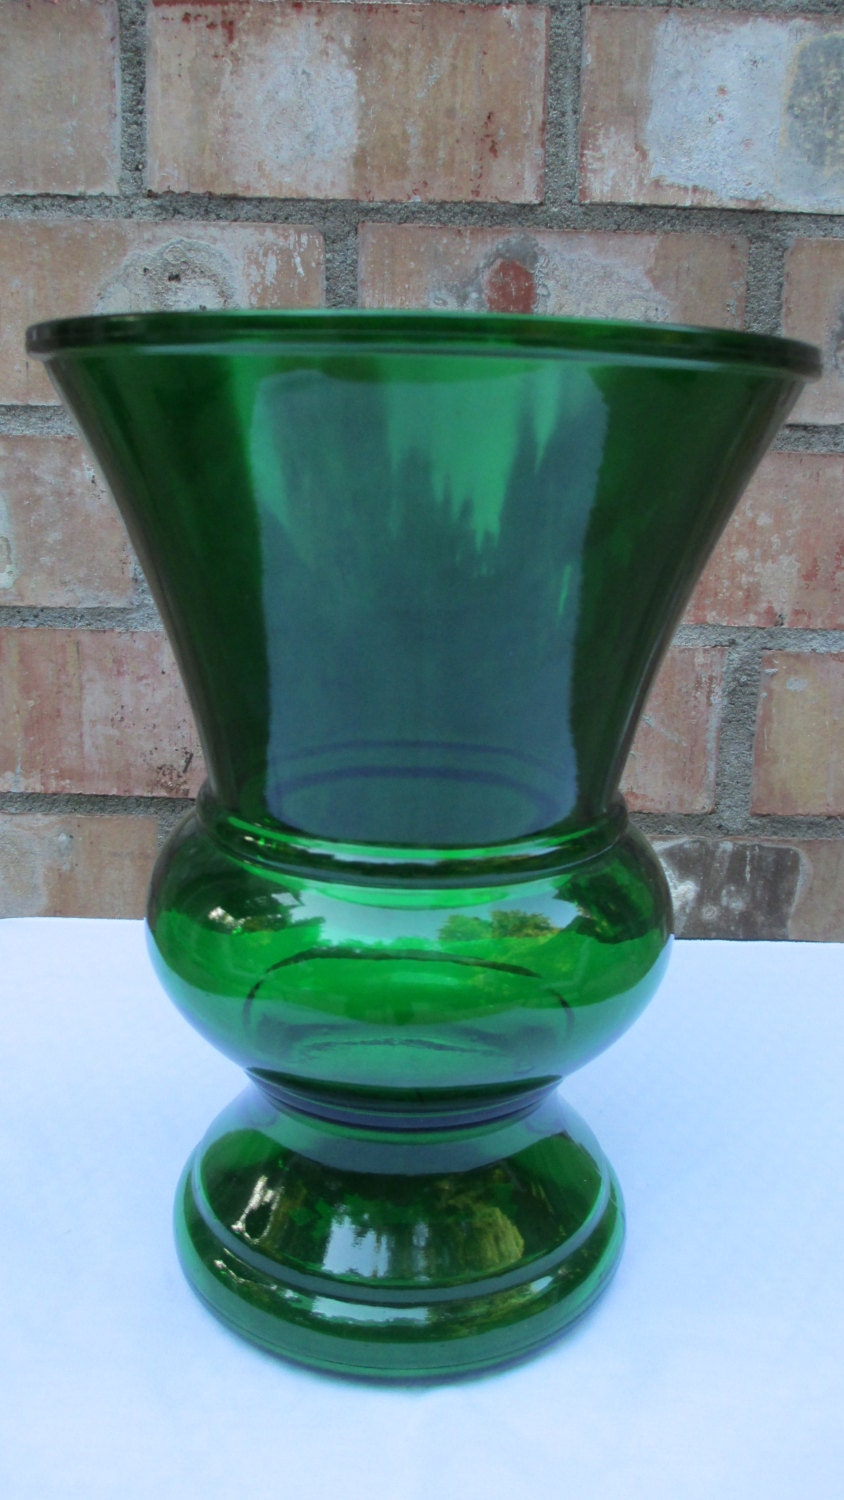 gl vase urn with Antique Napco Green Glass Vase Vintage on Gold Carnival Glass Vase Urn Bottle With in addition Search as well Urns Planters Vases Furniture likewise Little Vases Set Of 3 Small Green Vases besides Vases With Lids.